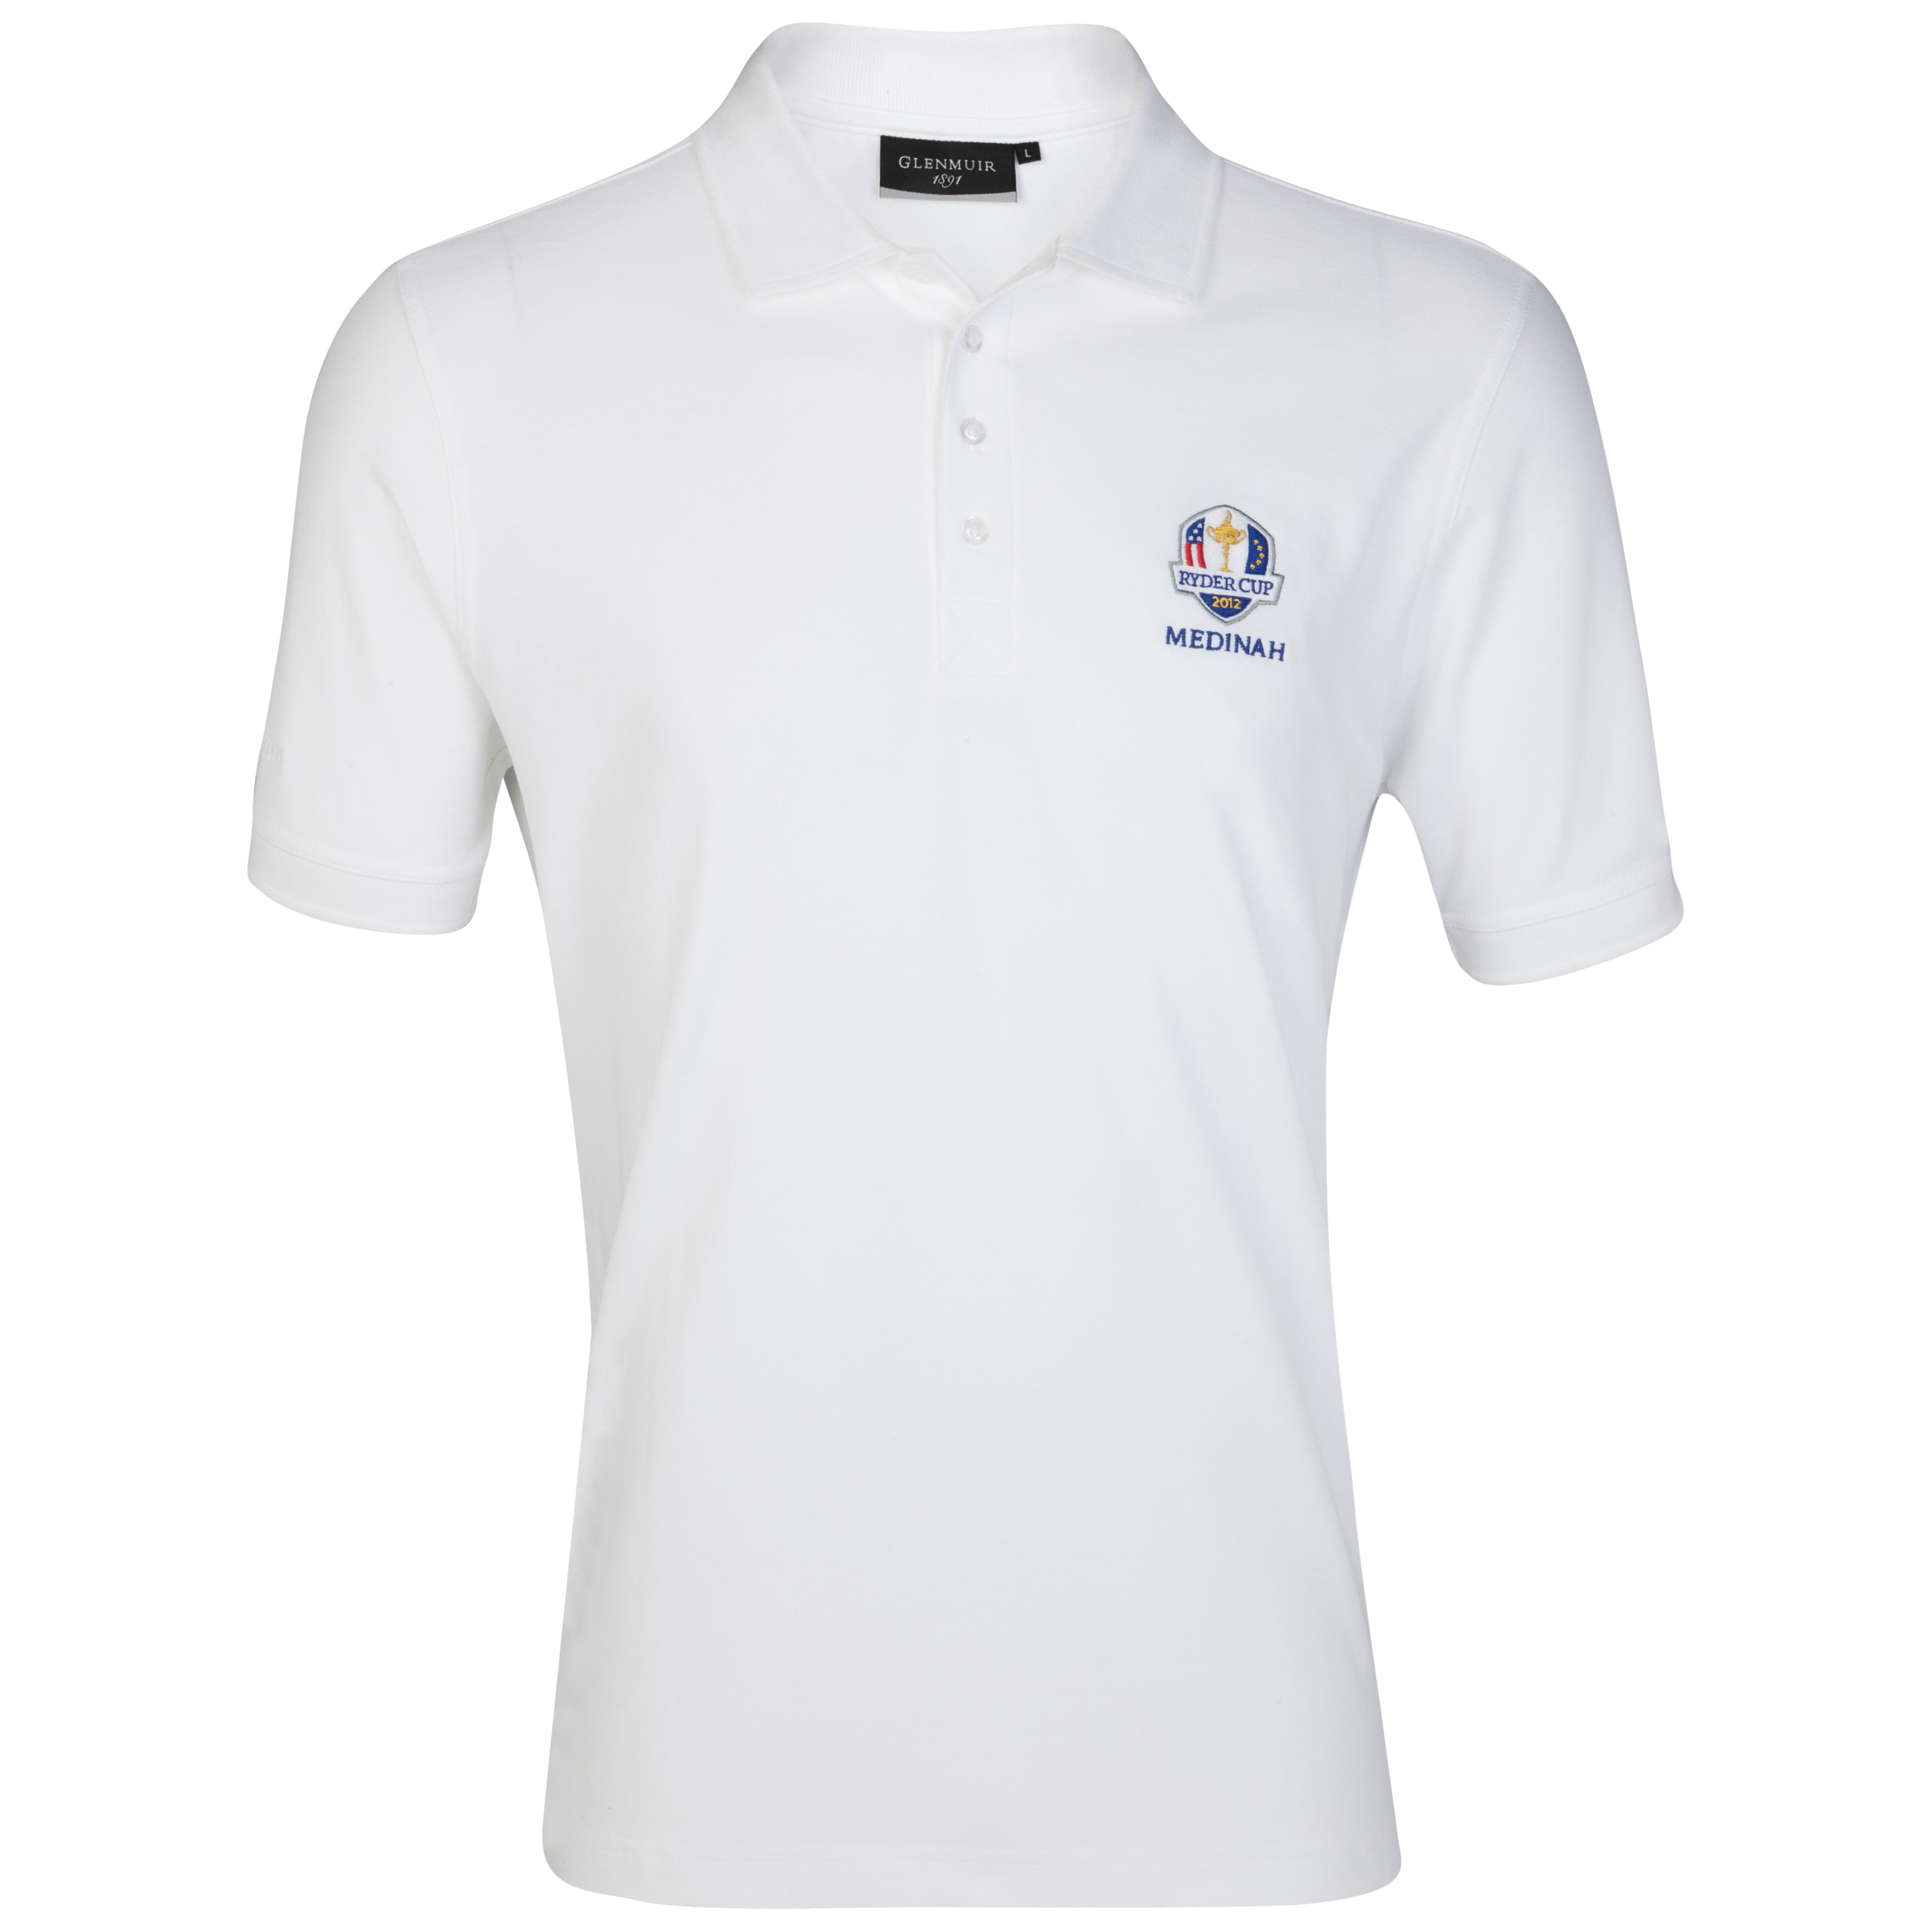 The 2014 Ryder Cup Glenmuir Ralia Commemorative Winners Polo Shirt